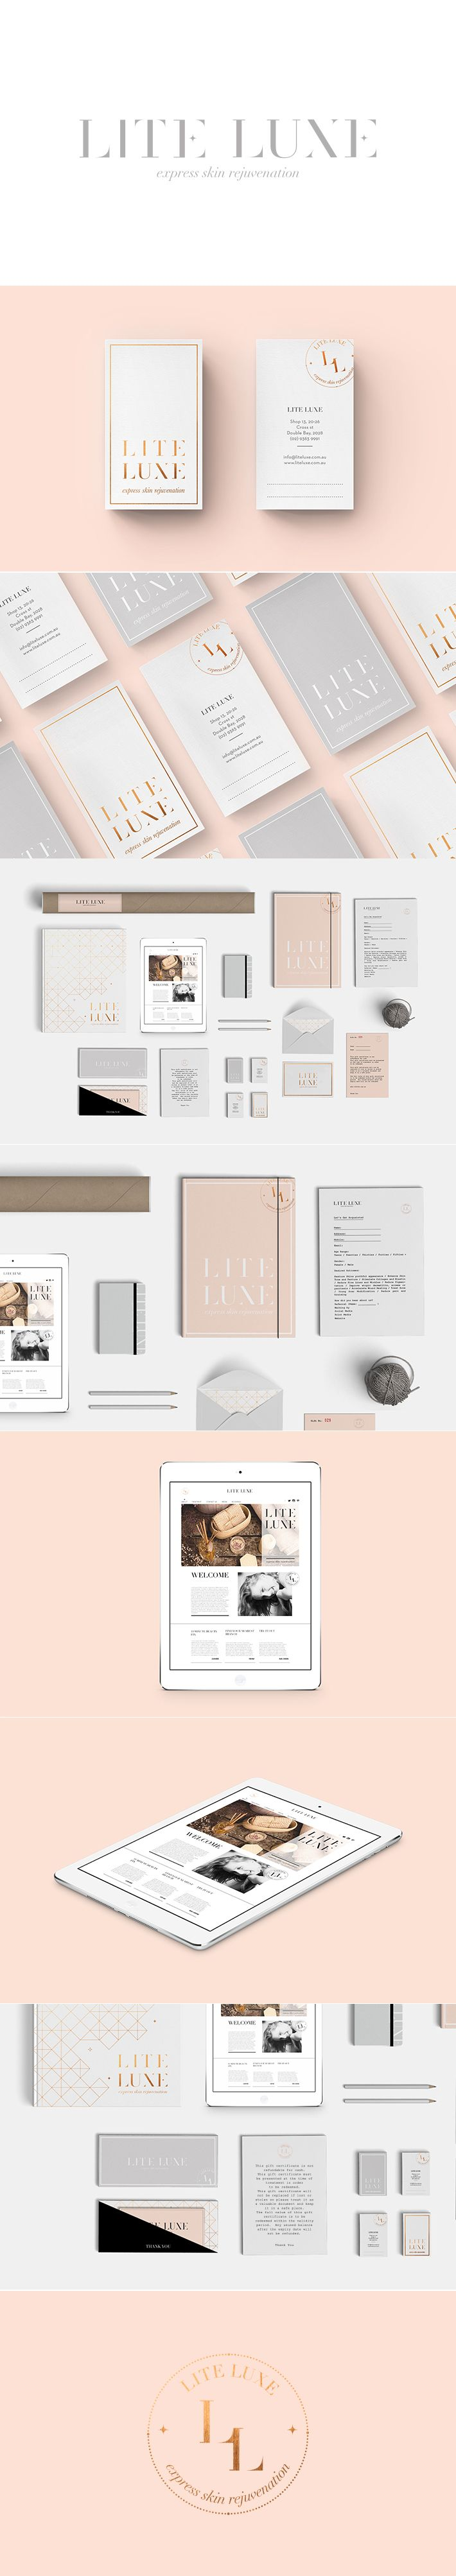 color palette, branding, graphic design, inspiration